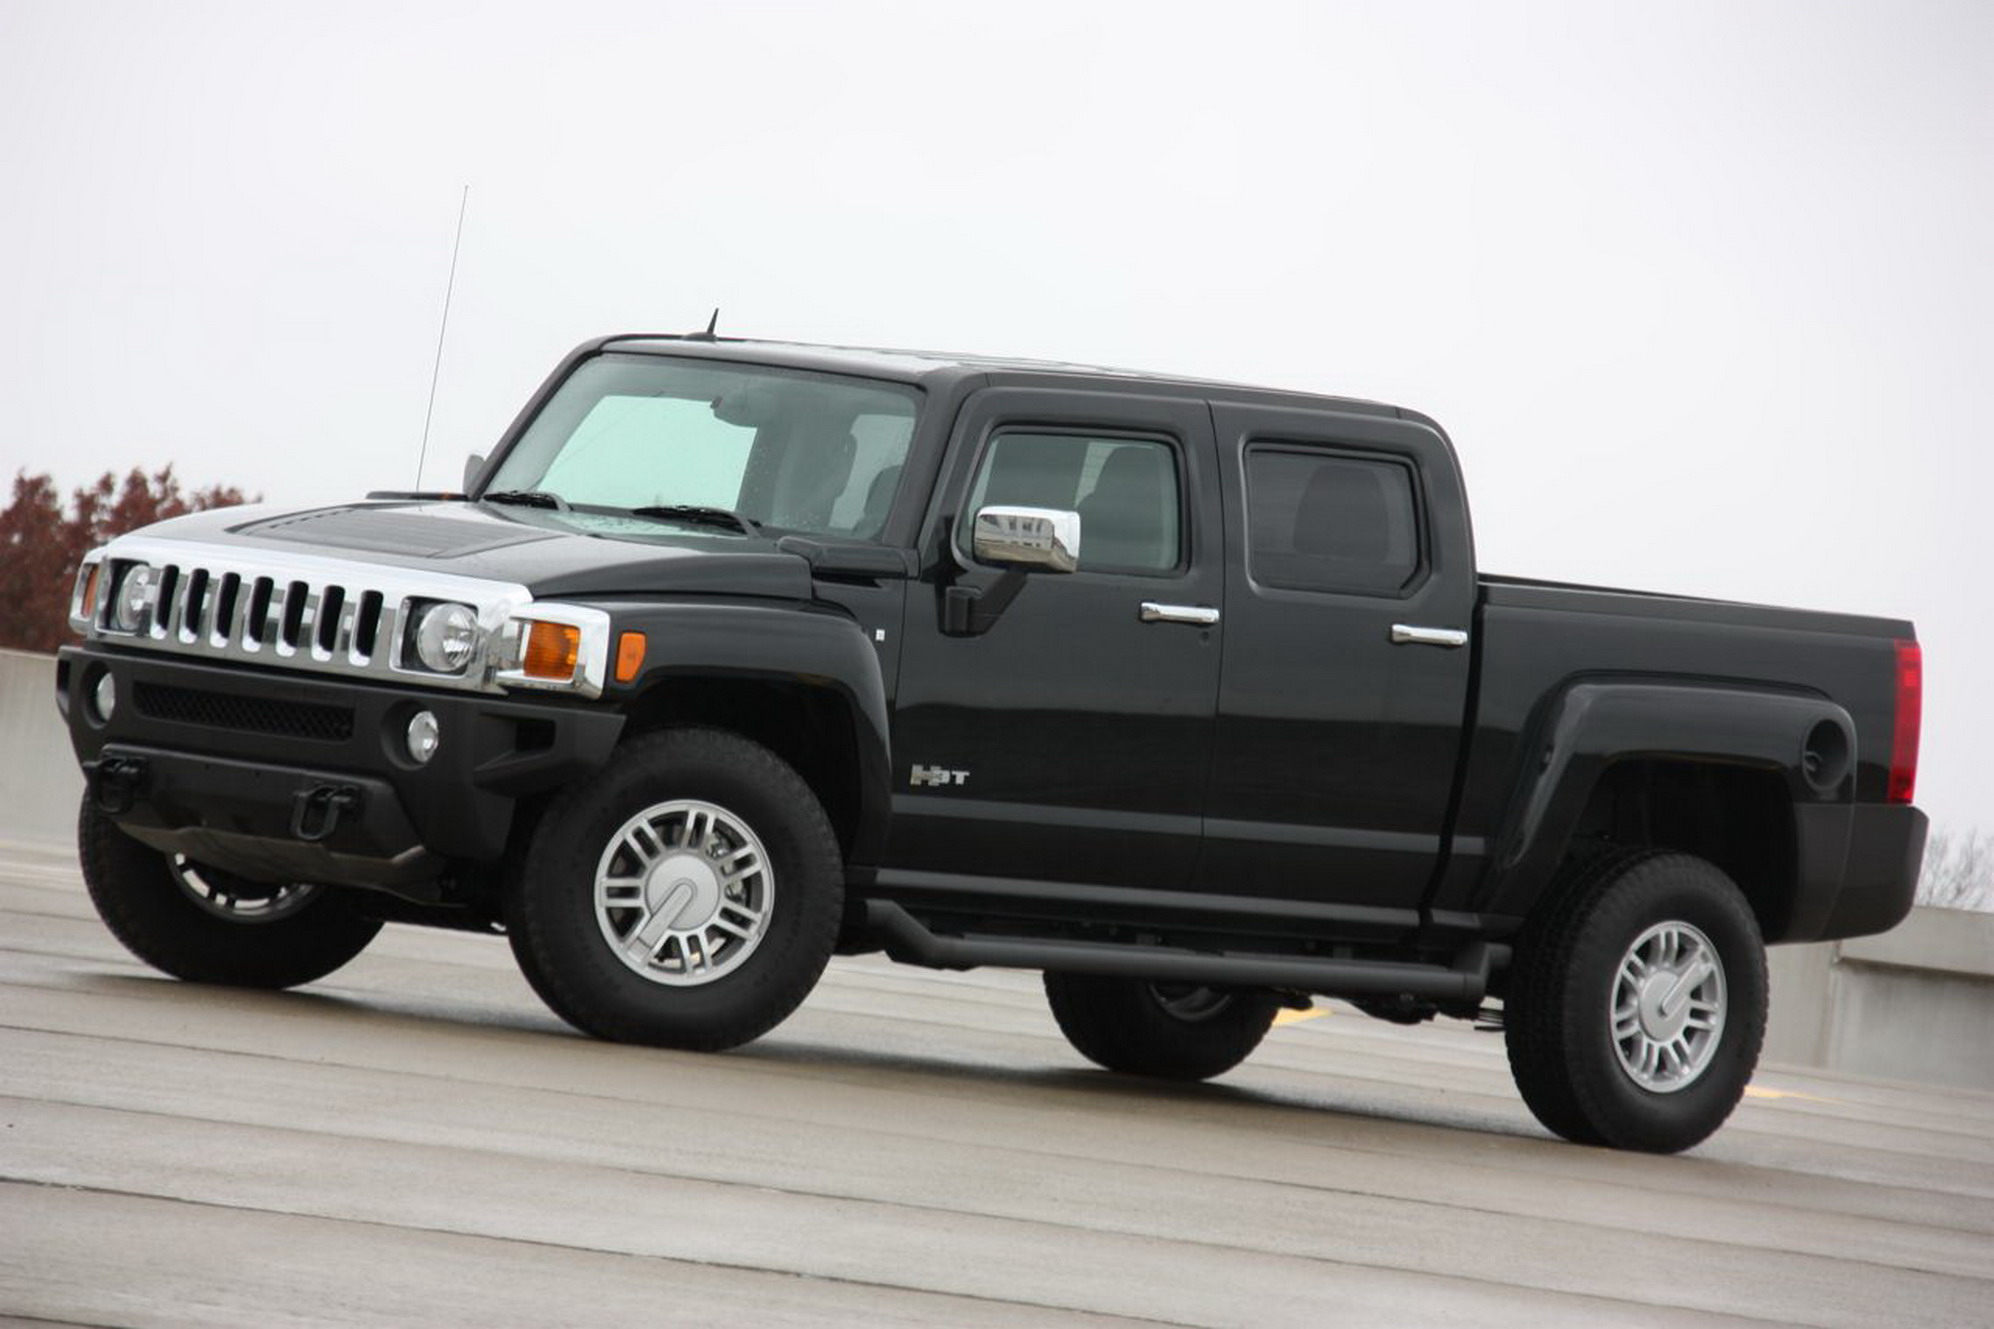 hummer h3t review specs price specifications Wallpapers Desktop Download